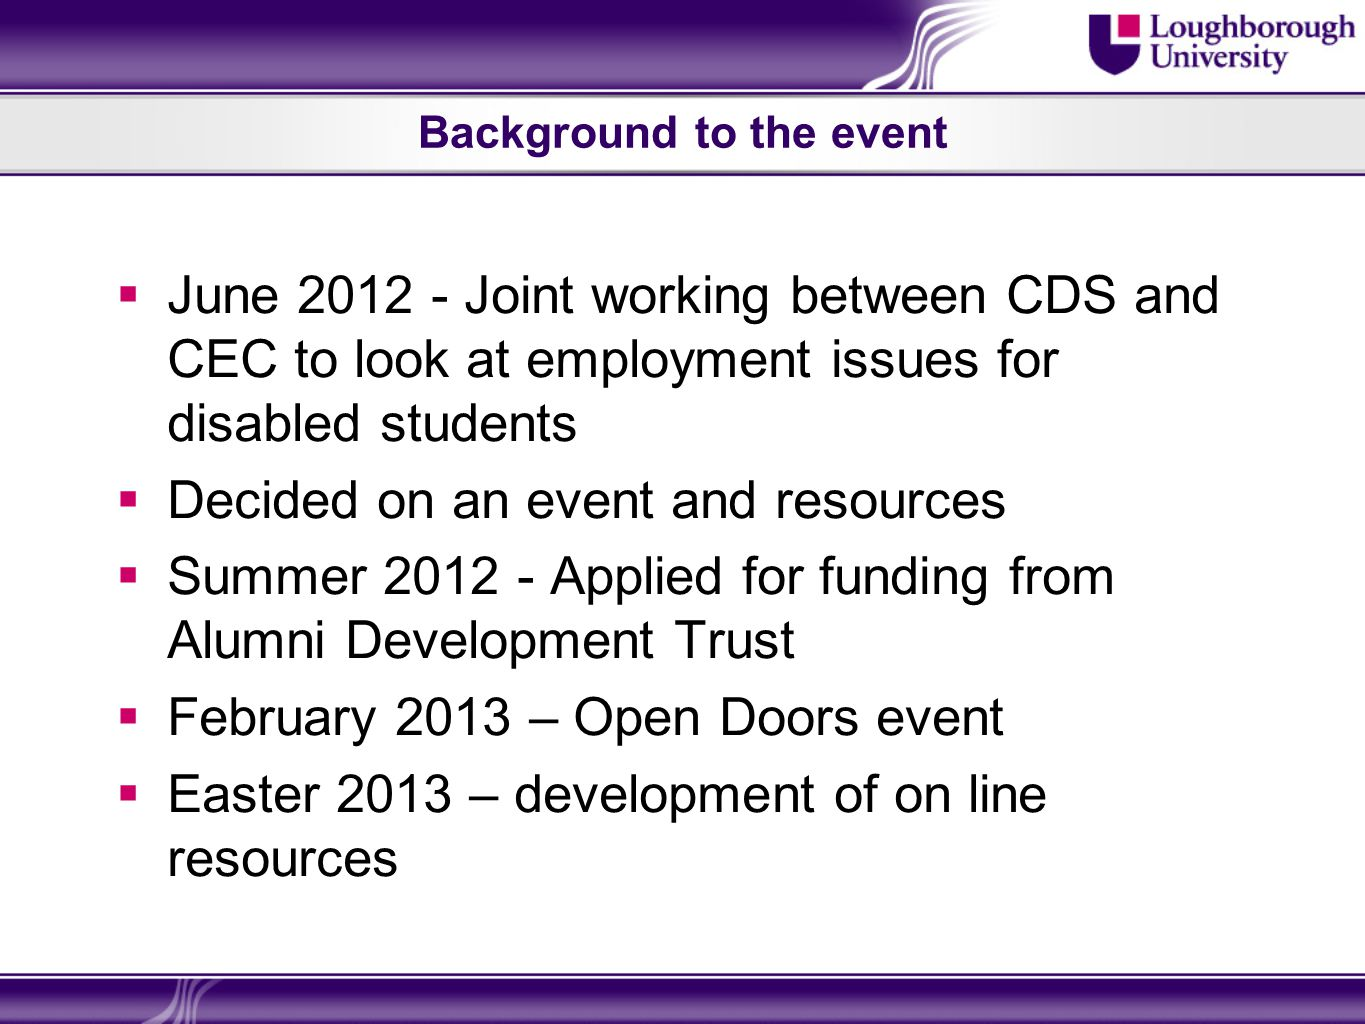 Background to the event June 2012 - Joint working between CDS and CEC to look at employment issues for disabled students Decided on an event and resources Summer 2012 - Applied for funding from Alumni Development Trust February 2013 – Open Doors event Easter 2013 – development of on line resources